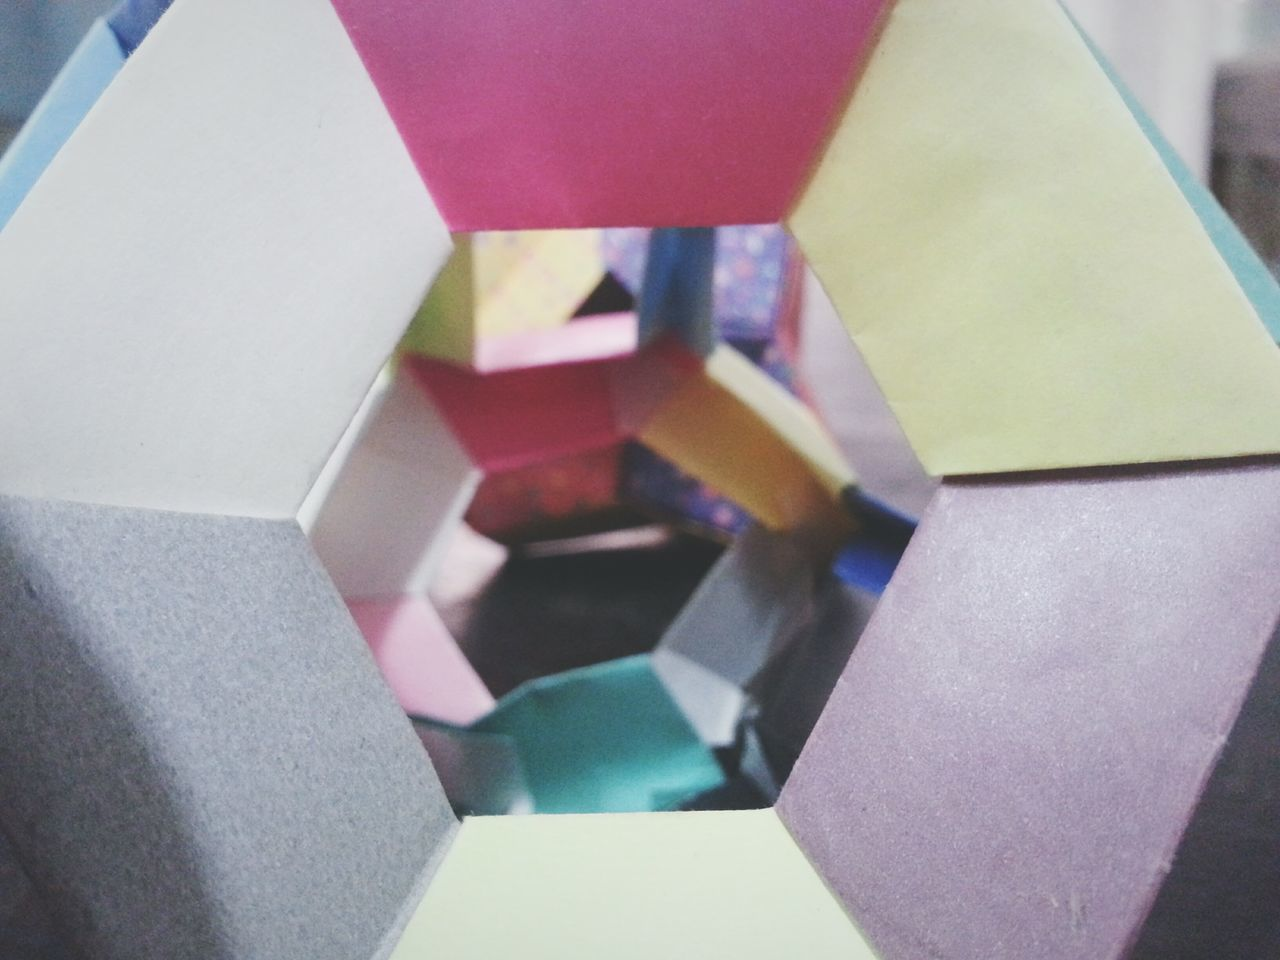 multi colored, indoors, close-up, high angle view, no people, paper, stack, day, geometry